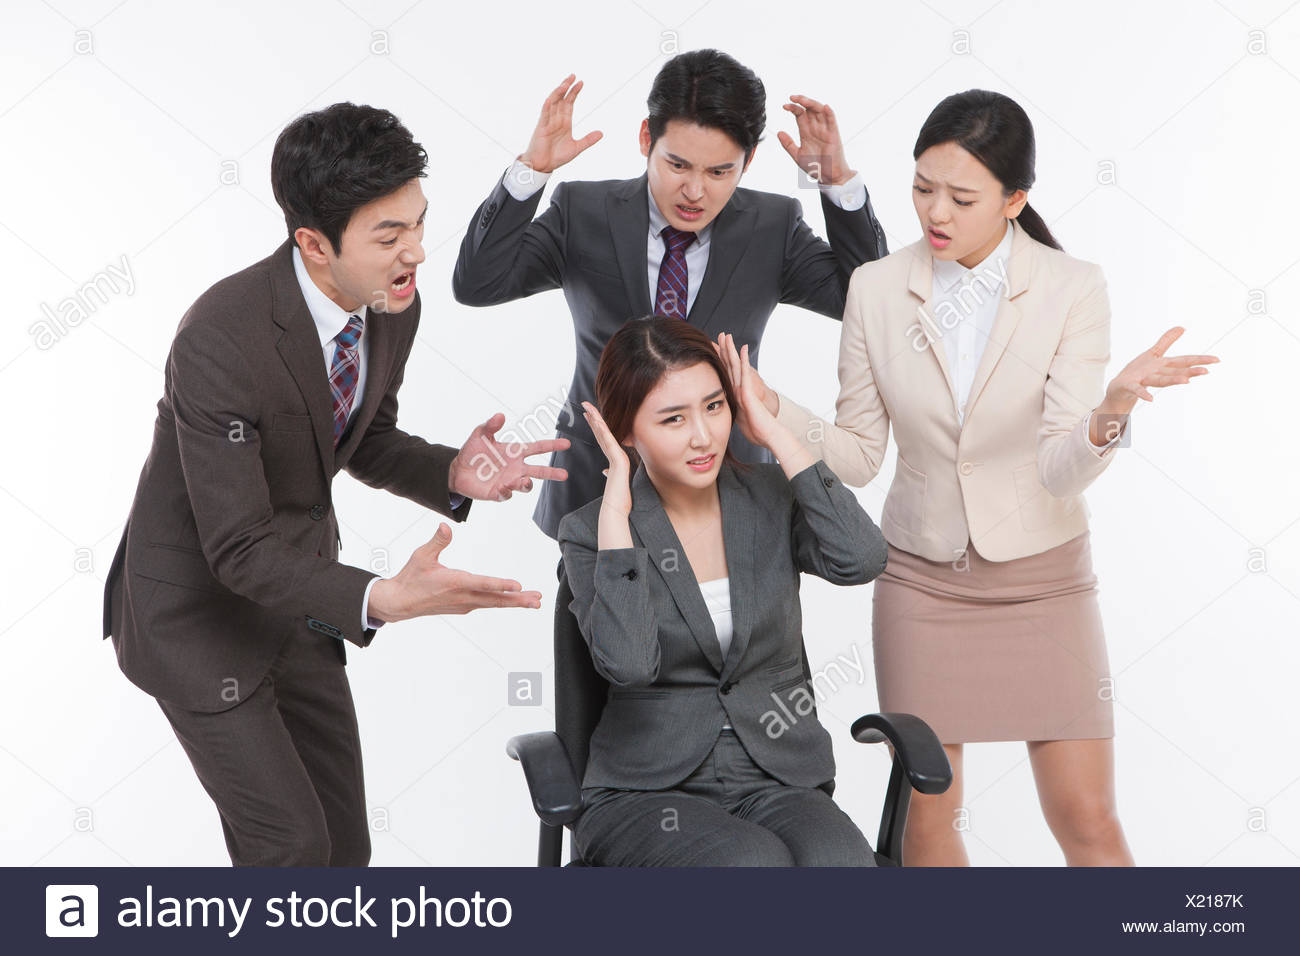 One stressful business woman and three business people angry at her - Stock Image